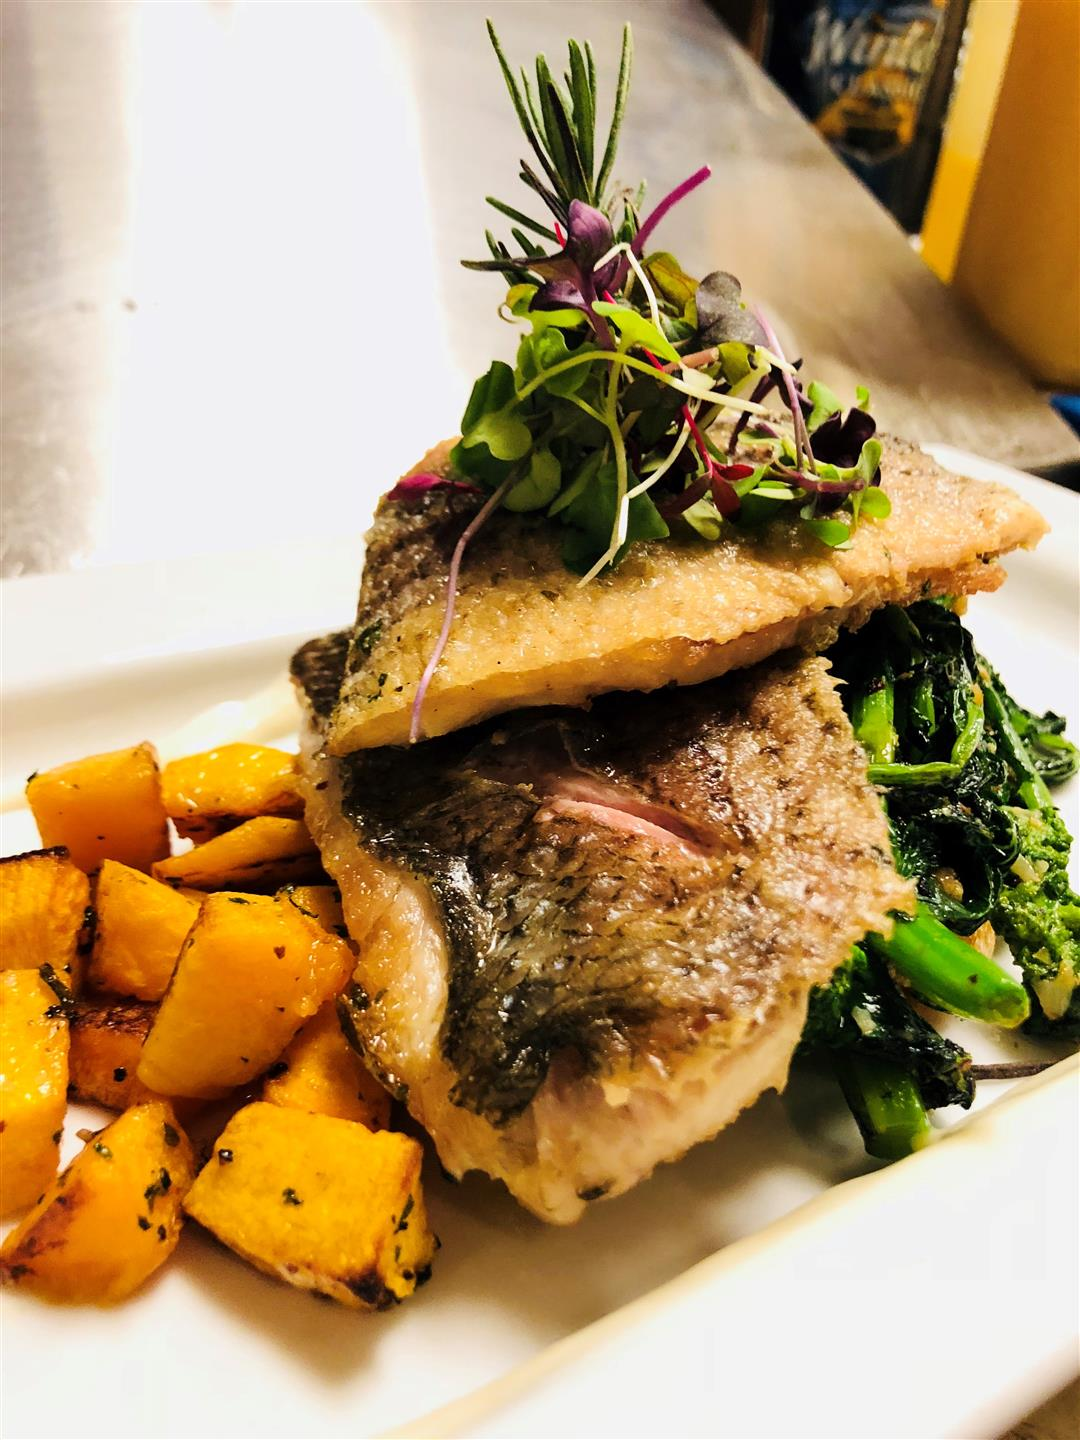 two pieces of fish on a plate with sweet potatoes and spinach on a white plate and garnished